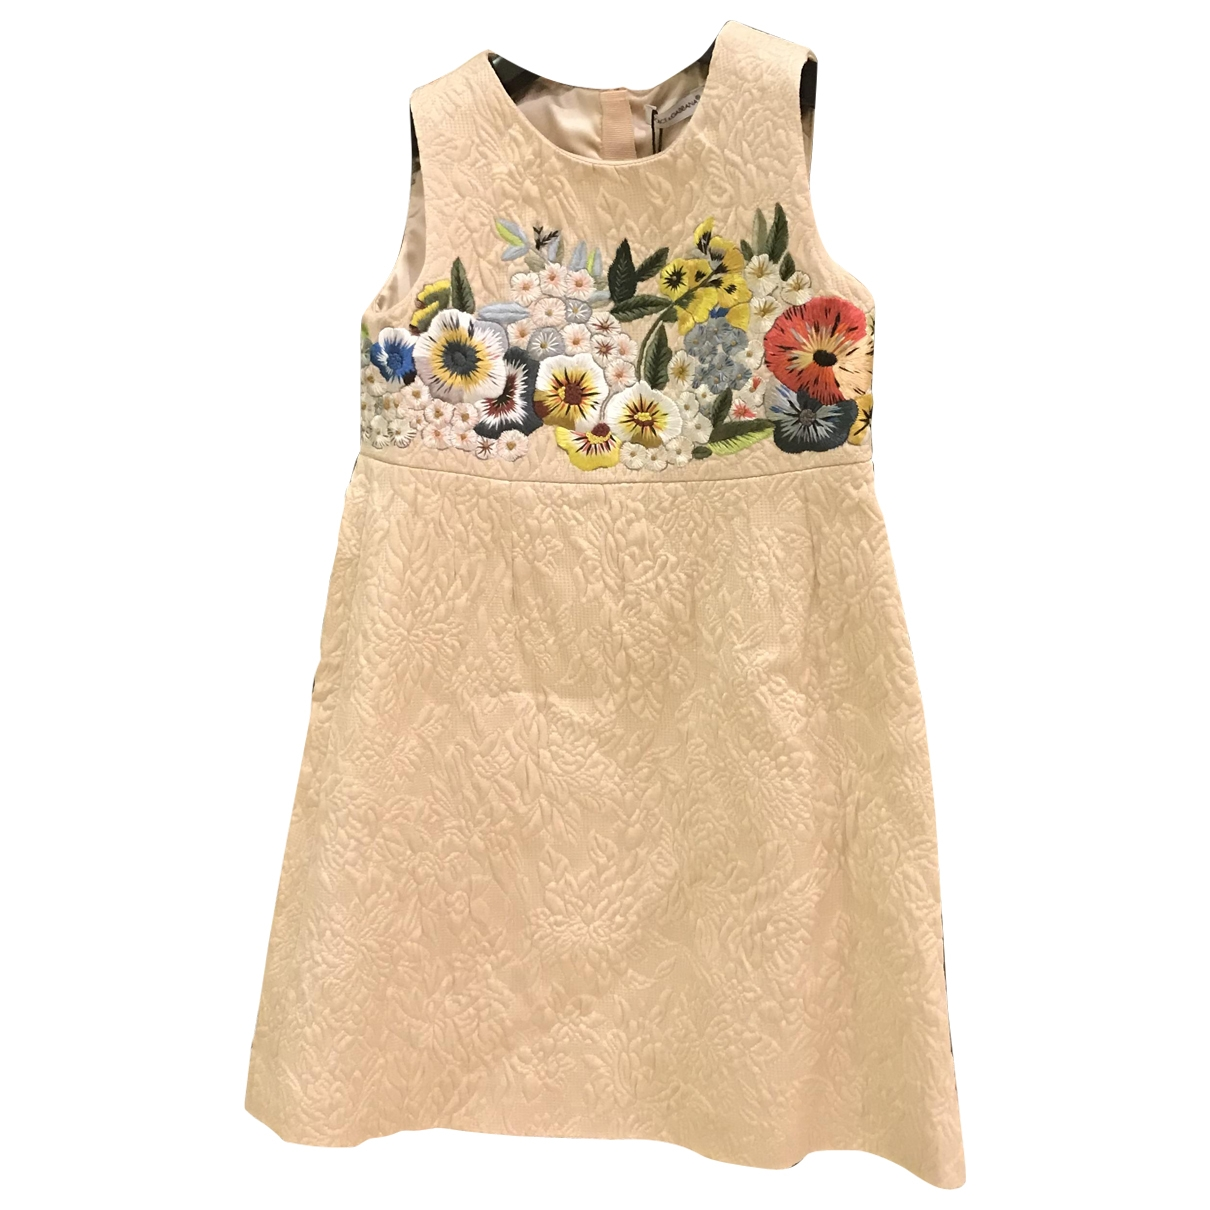 Dolce & Gabbana \N White Cotton dress for Kids 5 years - up to 108cm